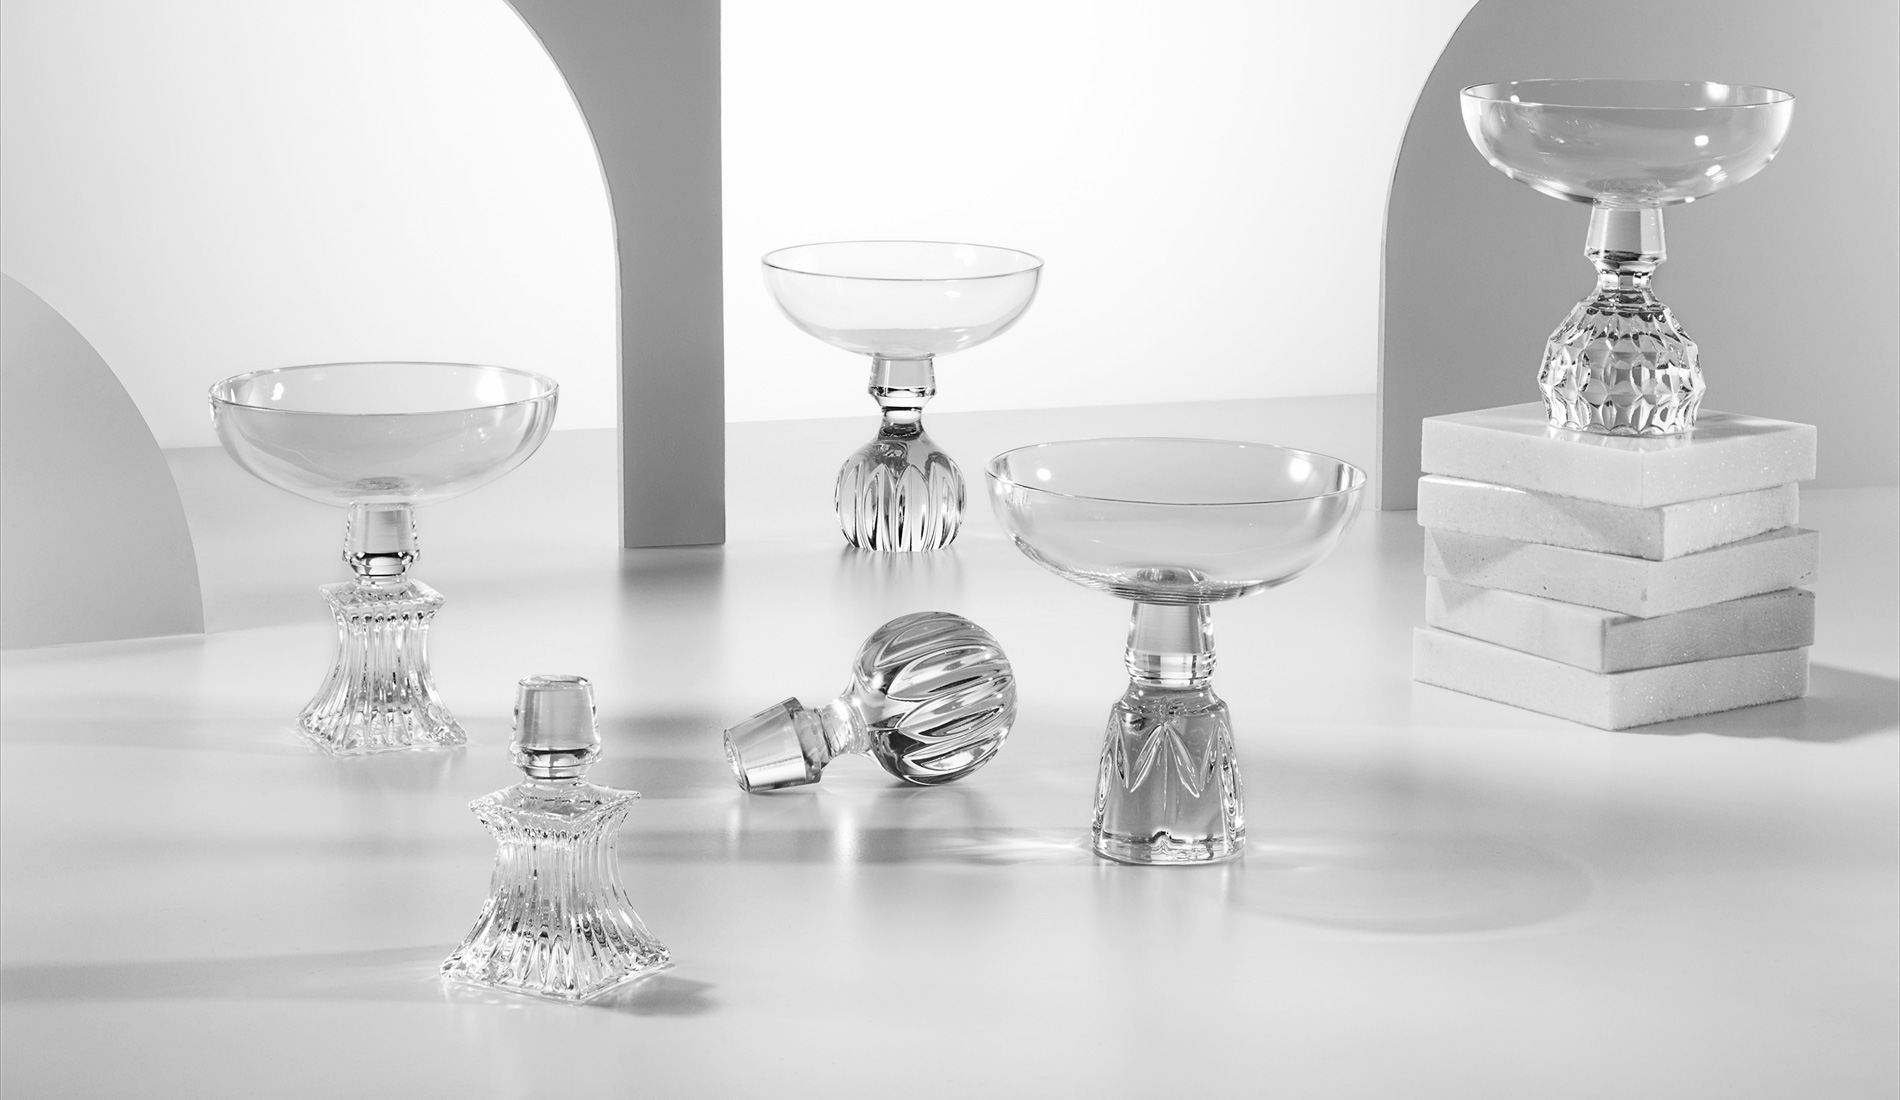 Interiors Advent Calendar - Half-cut champagne glasses by Lee Broom | Masha Shapiro Agency.jpg